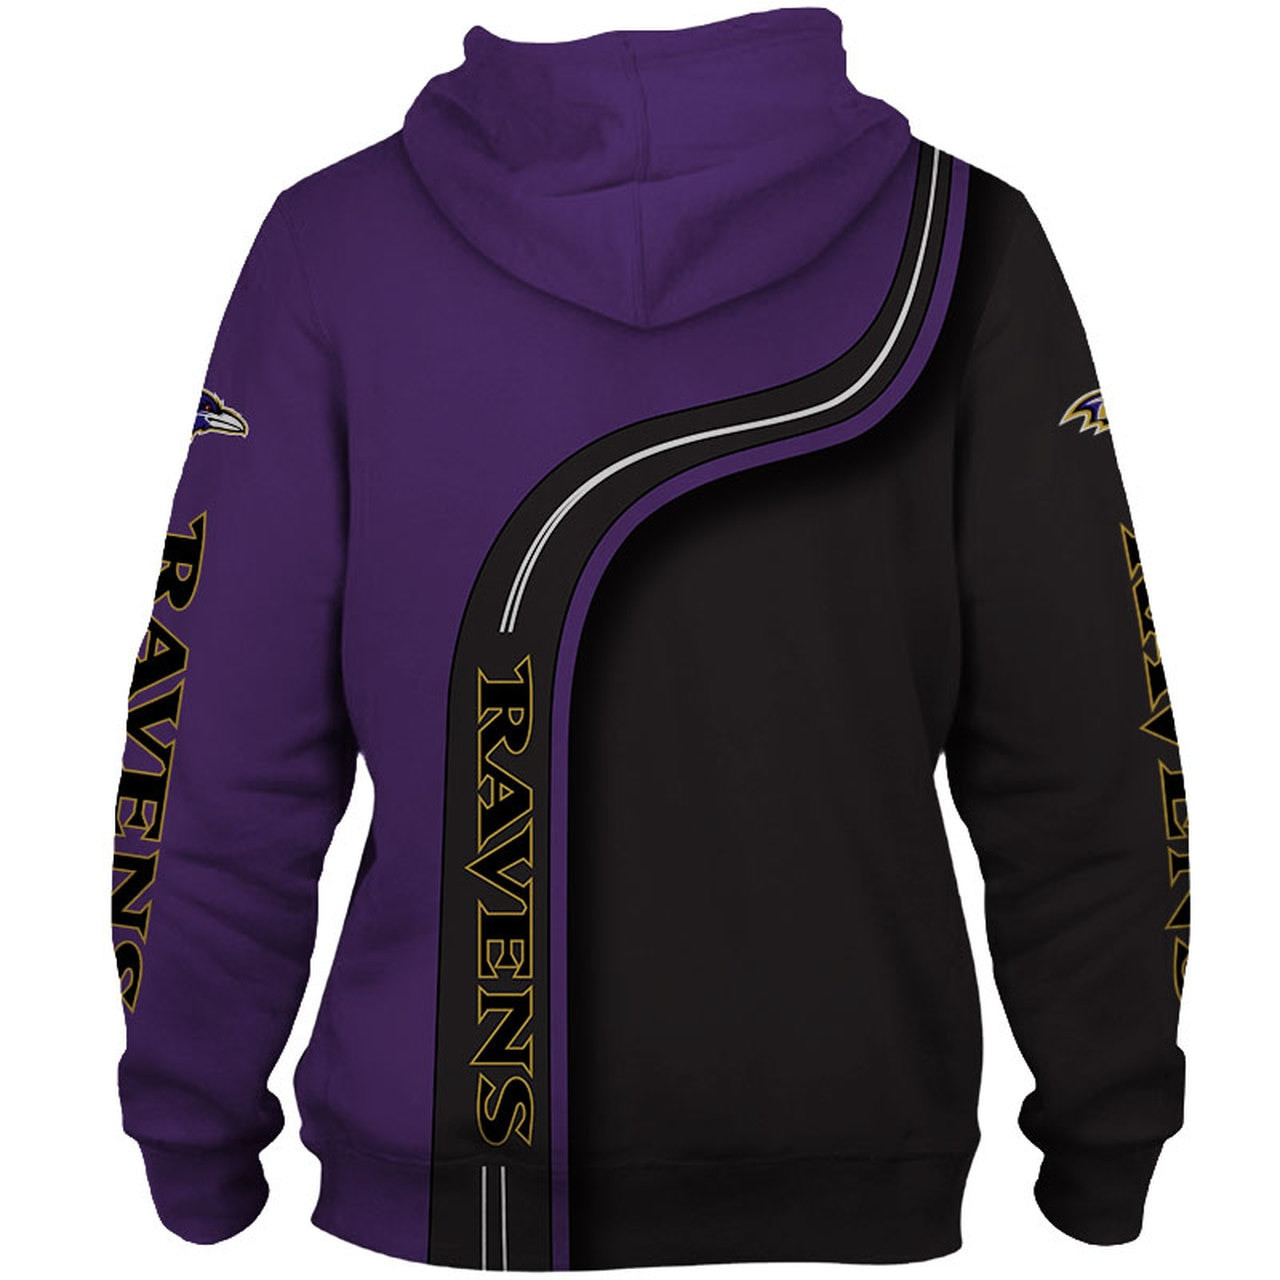 **(OFFICIAL-N.F.L.BALTIMORE-RAVENS-FASHION-ZIPPERED-TEAM-HOODIES/CUSTOM-3D-GRAPHIC-PRINTED-DETAILED-DOUBLE-SIDED-DESIGN/CLASSIC-OFFICIAL-RAVENS-TEAM-LOGOS & OFFICIAL-RAVENS-TEAM-COLORS/WARM-PREMIUM-OFFICIAL-N.F.L.RAVENS-FAN-TEAM-ZIPPERED-HOODIE)**